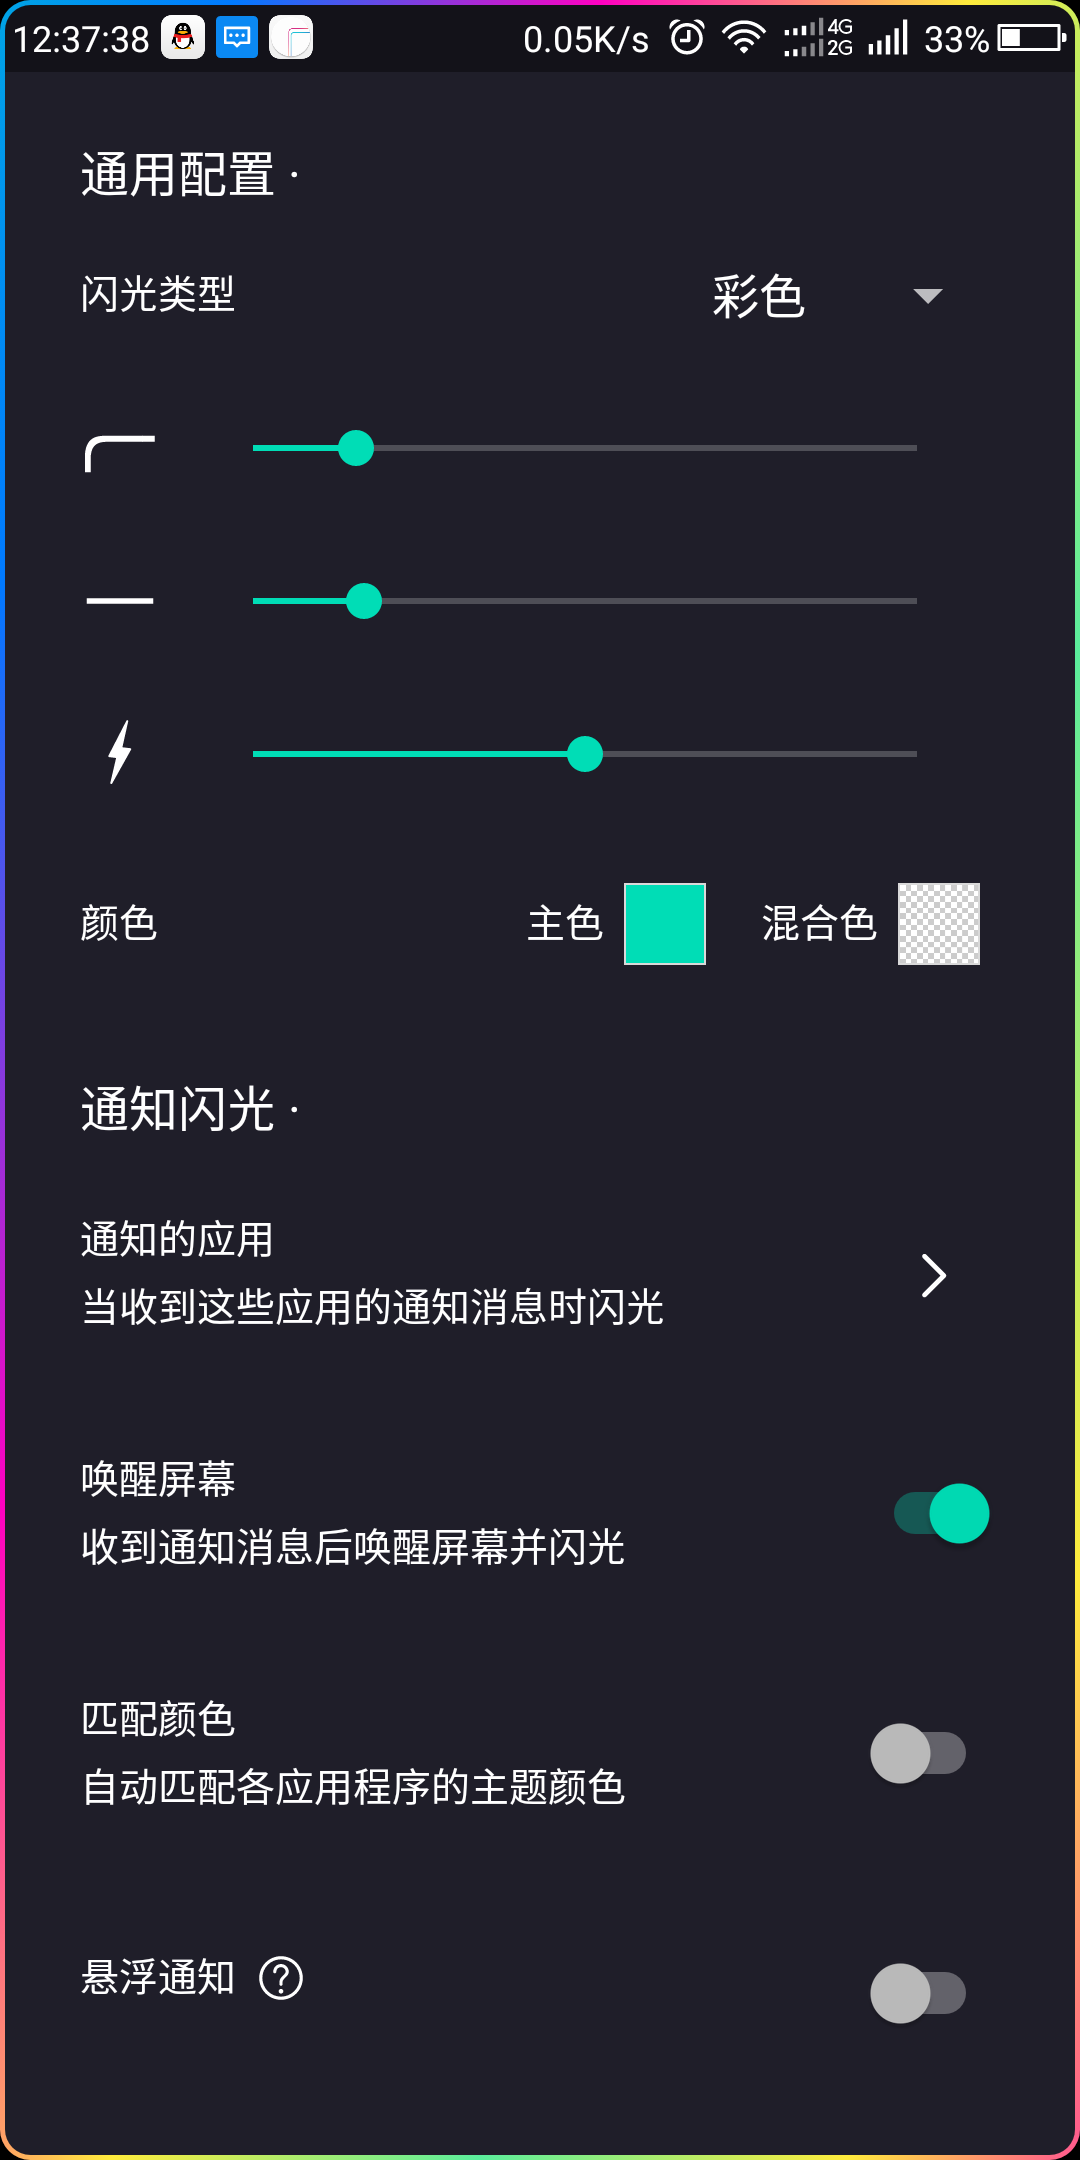 Screenshot_2018-09-04-12-37-39.png